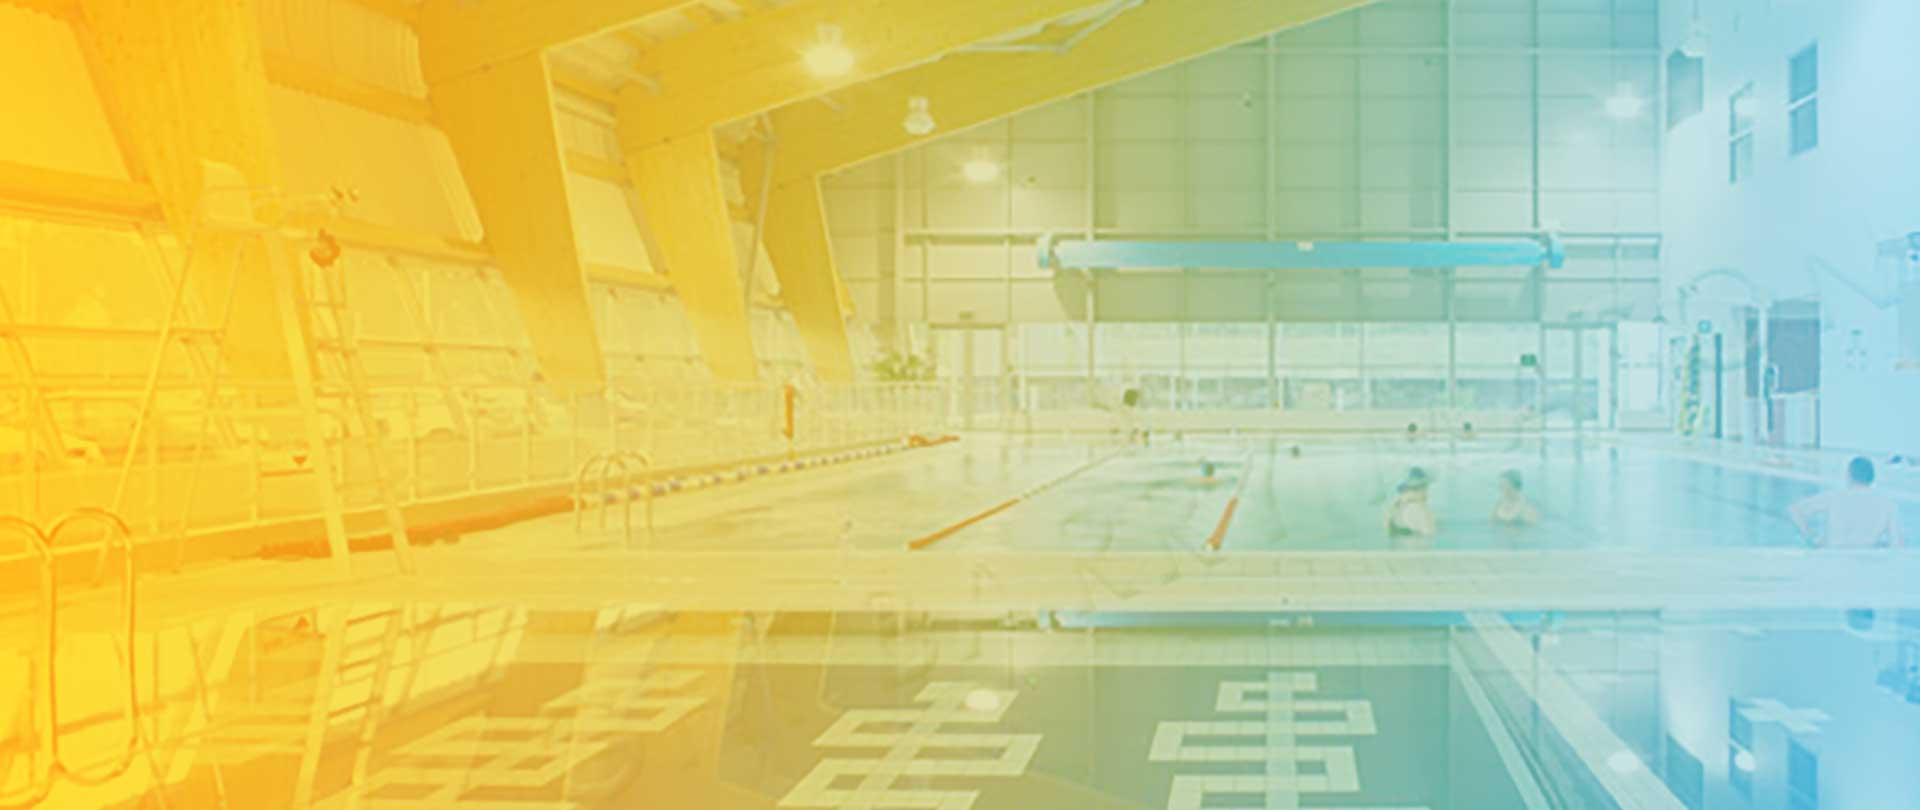 Gym and pool carrick on shannon aura leisure centre - Drogheda leisure centre swimming pool ...